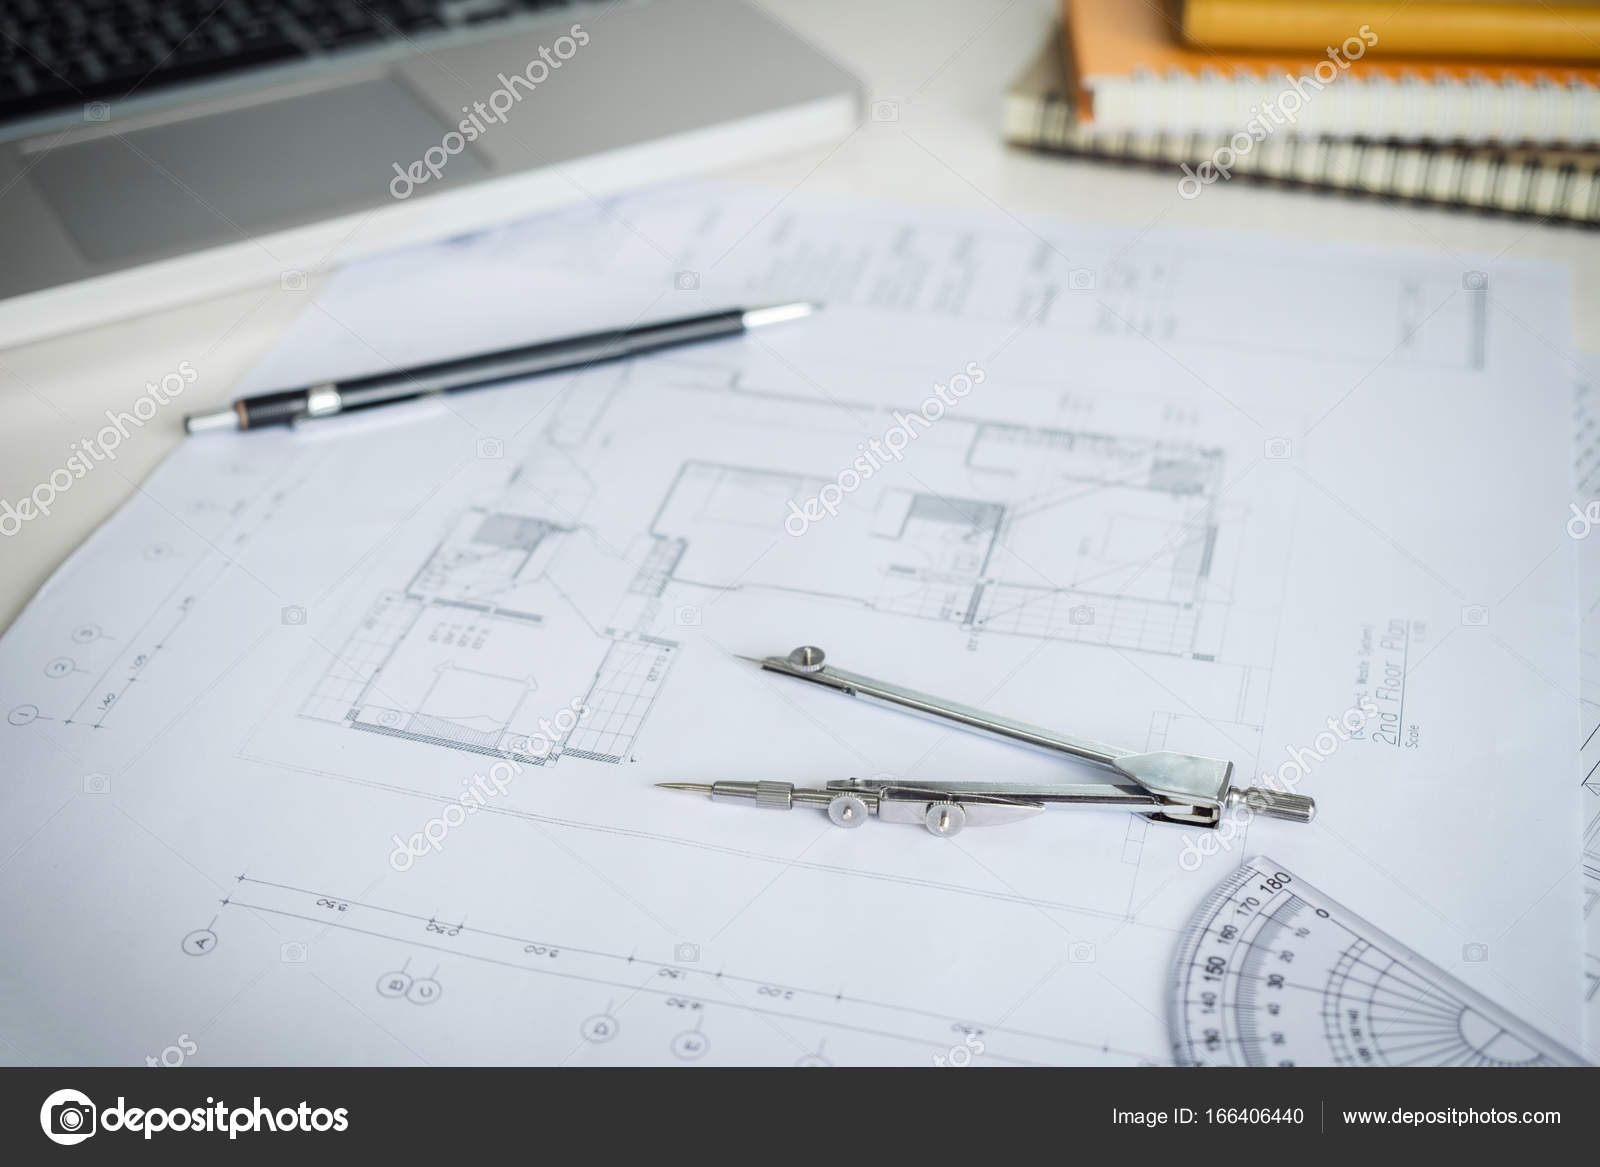 Blueprint paper drafting project sketch architectural dividers blueprint paper drafting project sketch architectural dividers ruler engineering tools on workplace photo by freedomtumz malvernweather Image collections